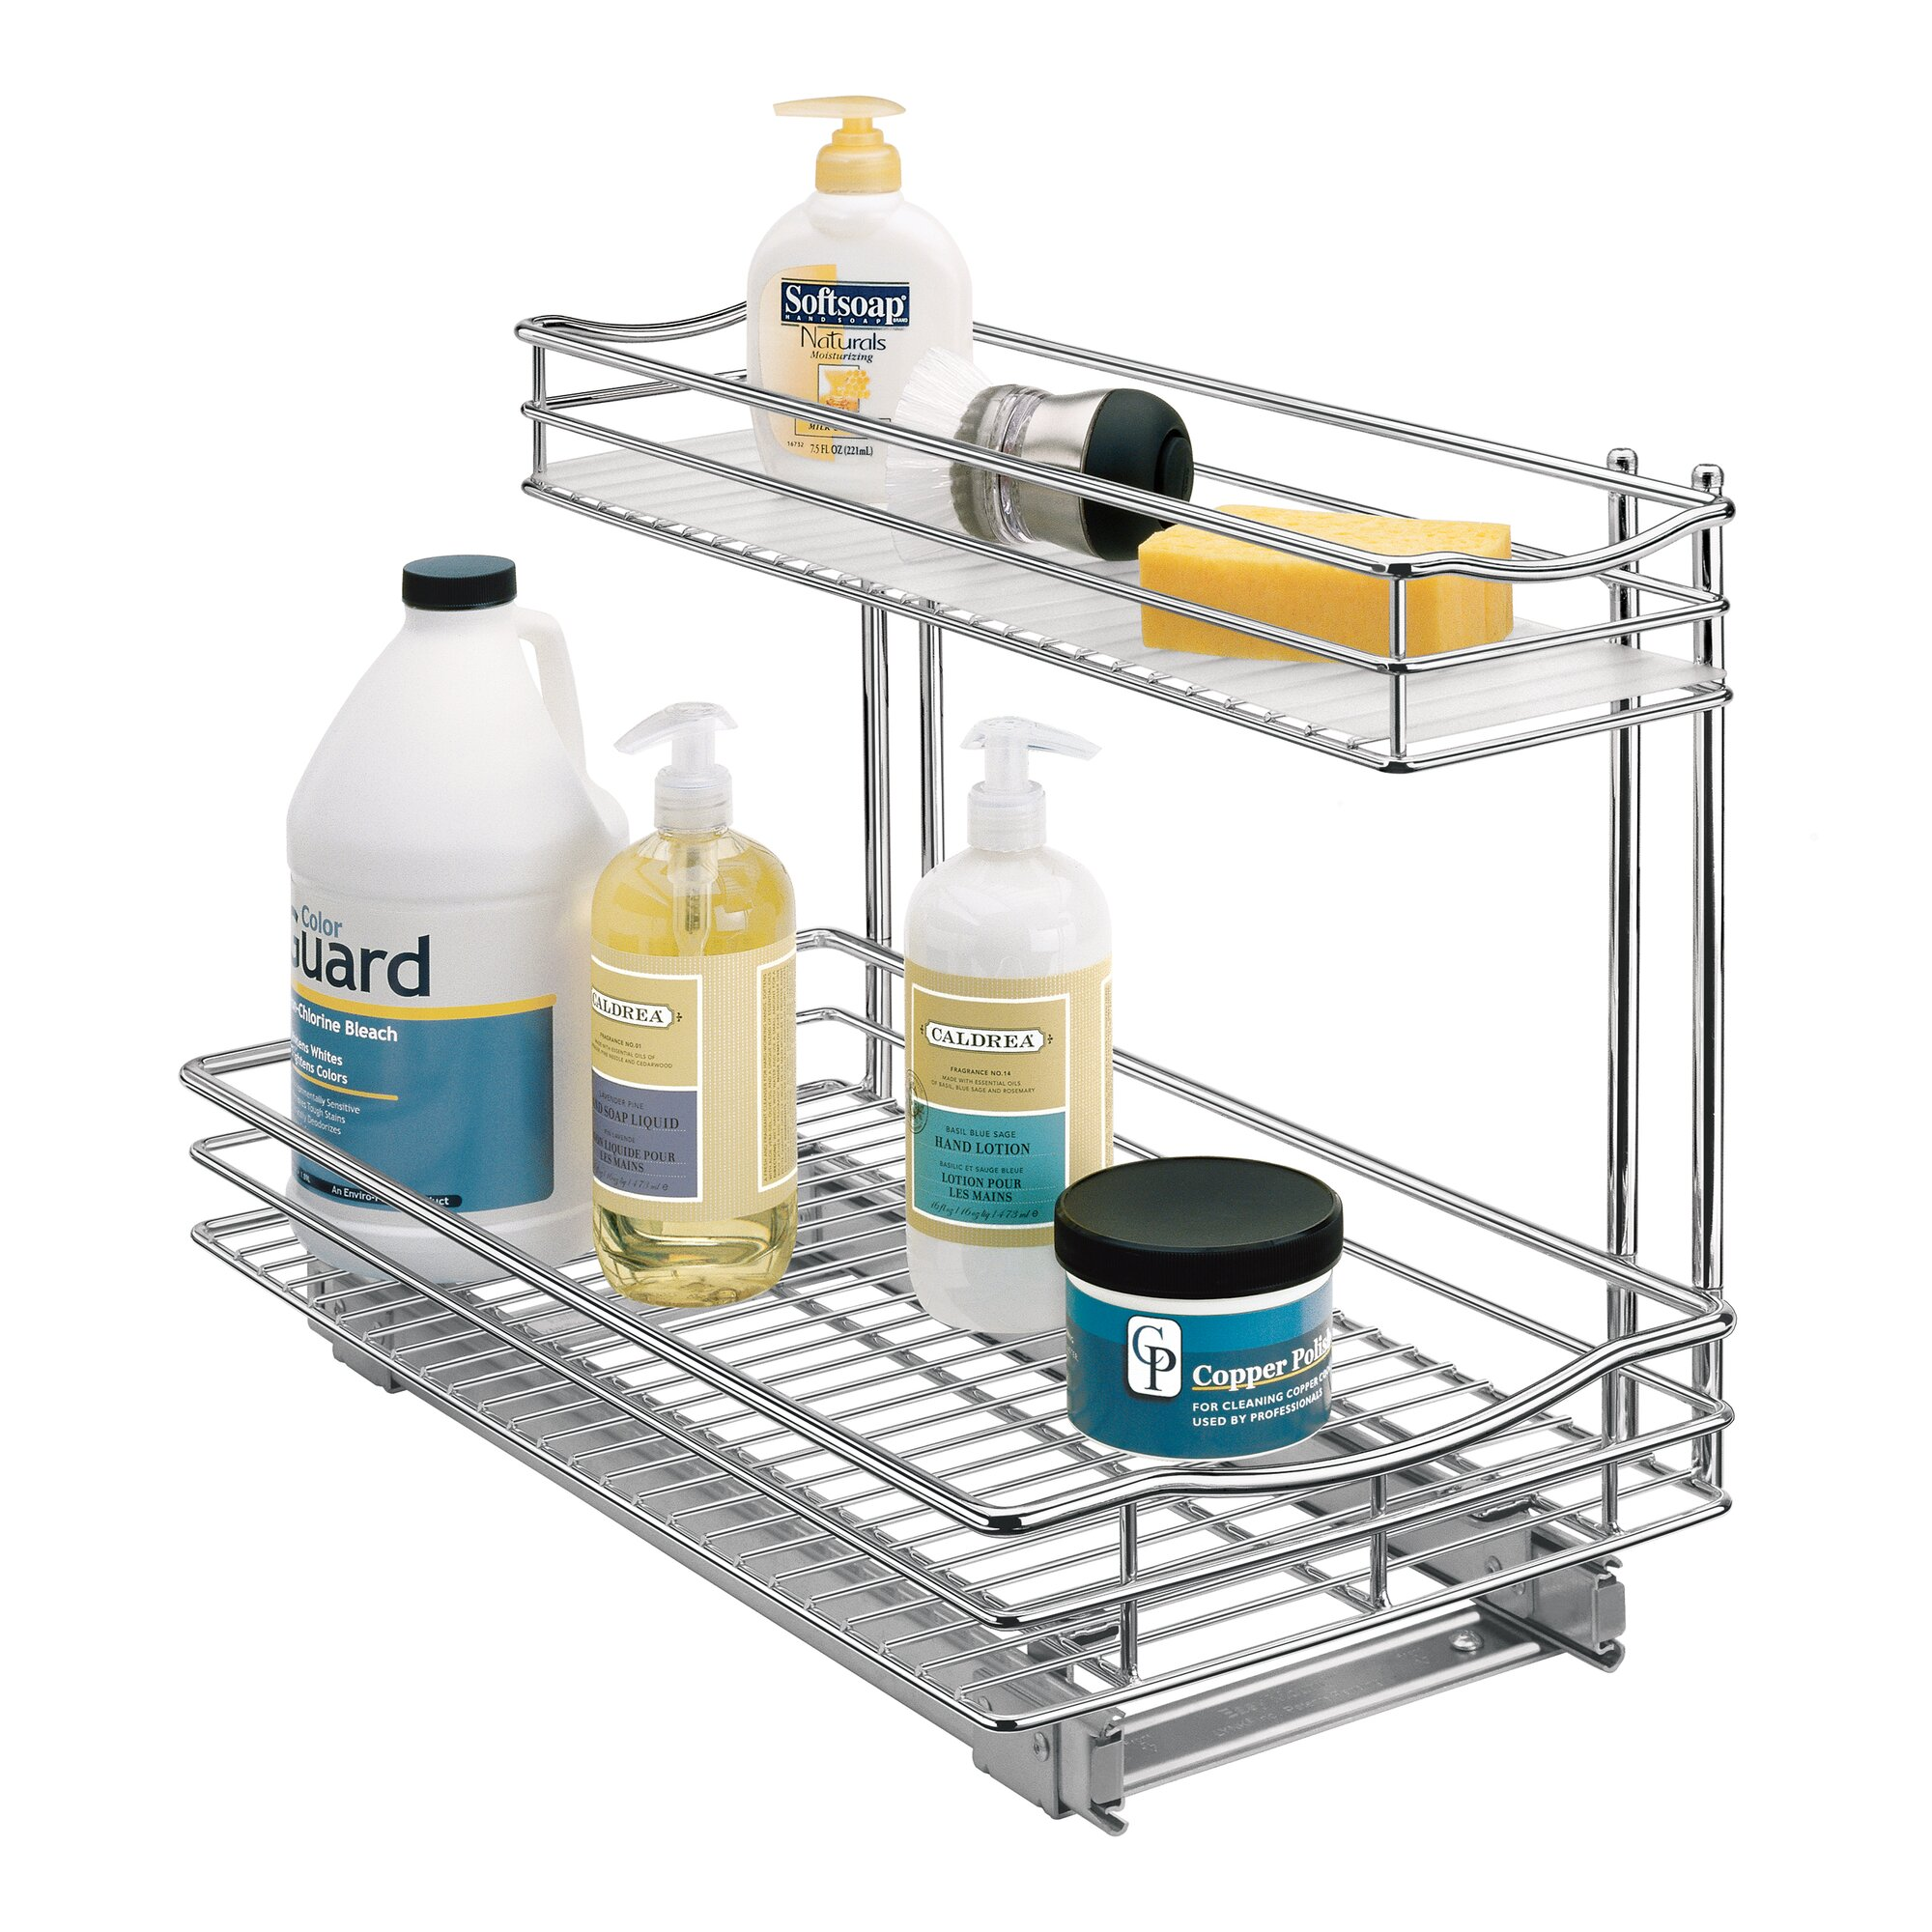 Roll Out Under Sink Cabinet Organizer - Pull Out Two Tier Sliding ...